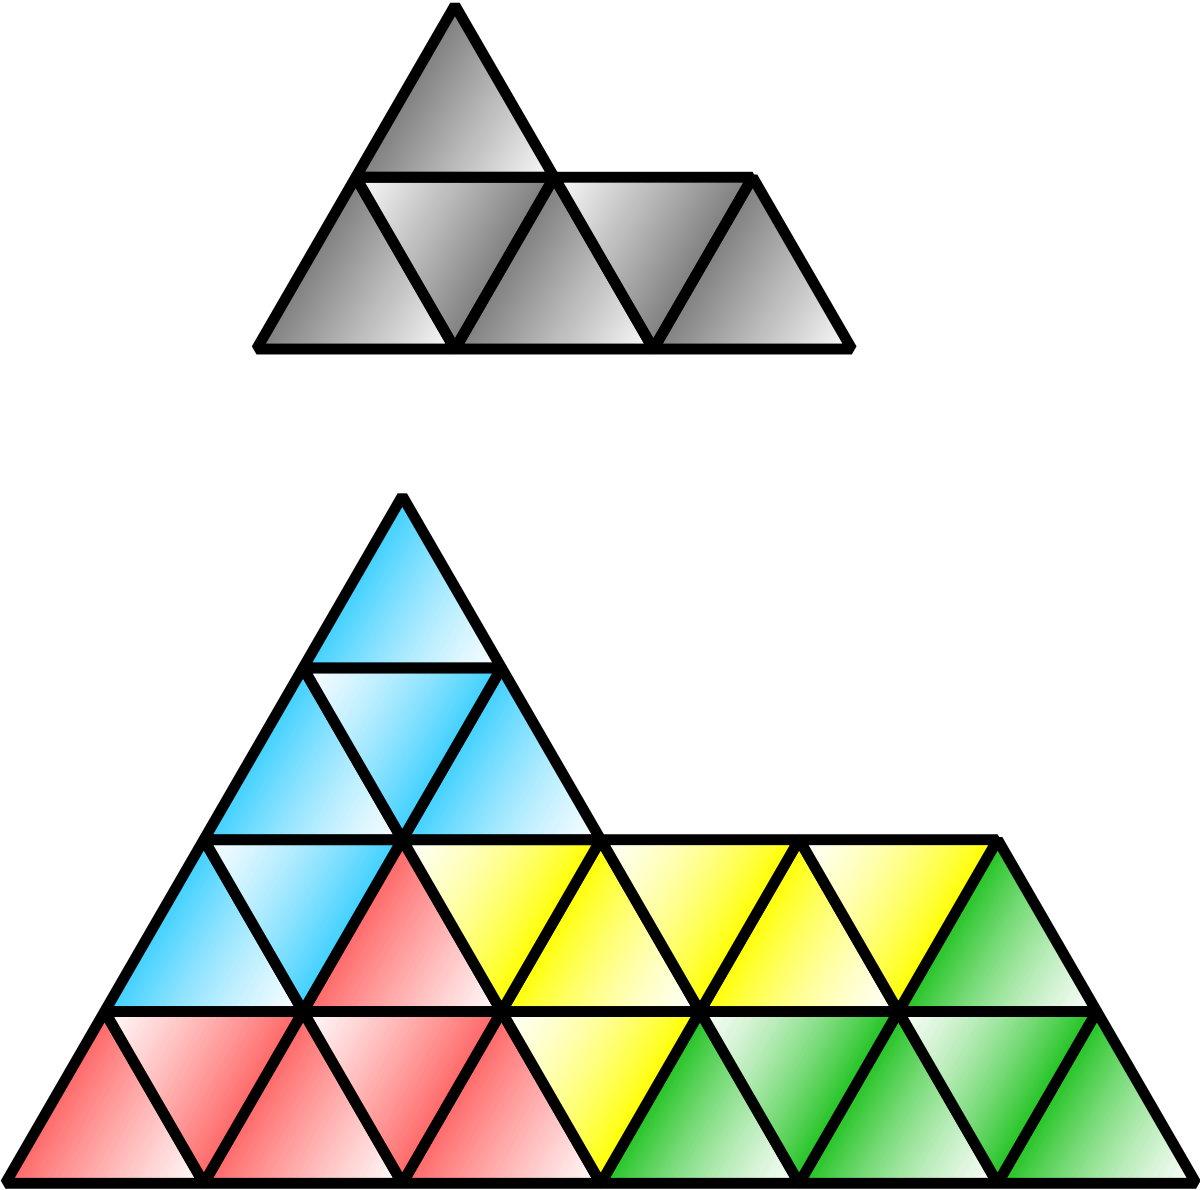 Hexagon clipart equilateral. Sphinx tiling wikipedia